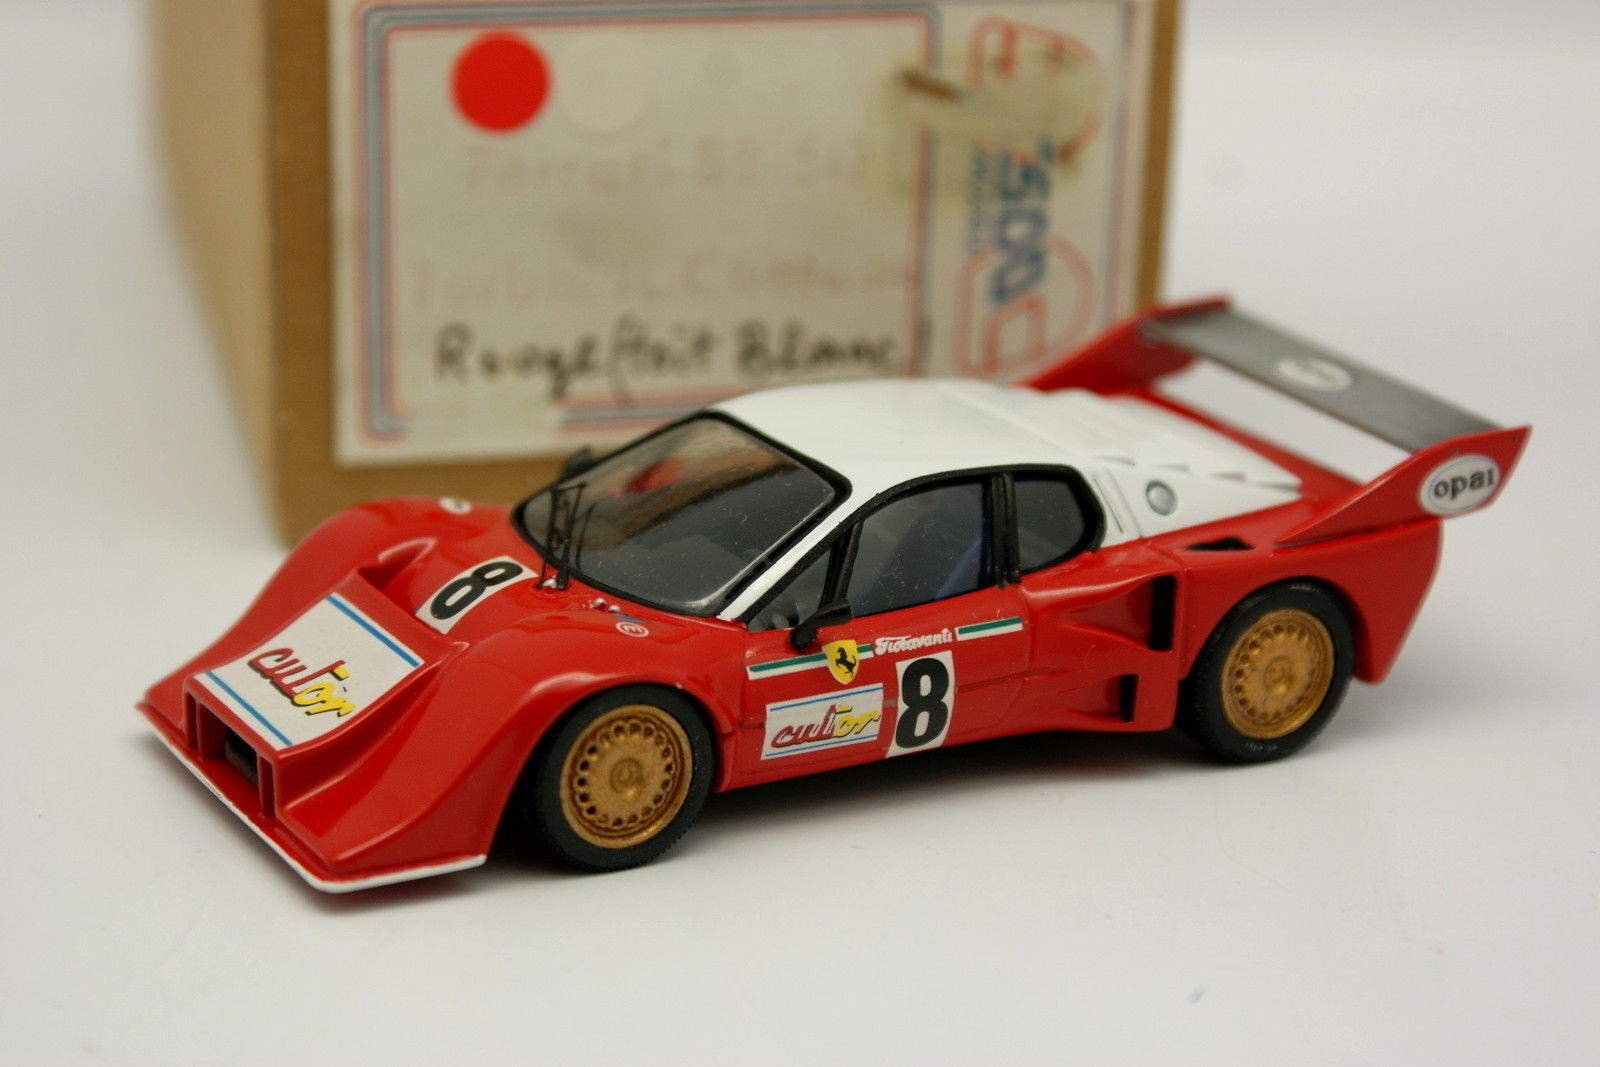 ESDO Kit Montado 1 43 - Ferrari BB 512 Turbo Chateau